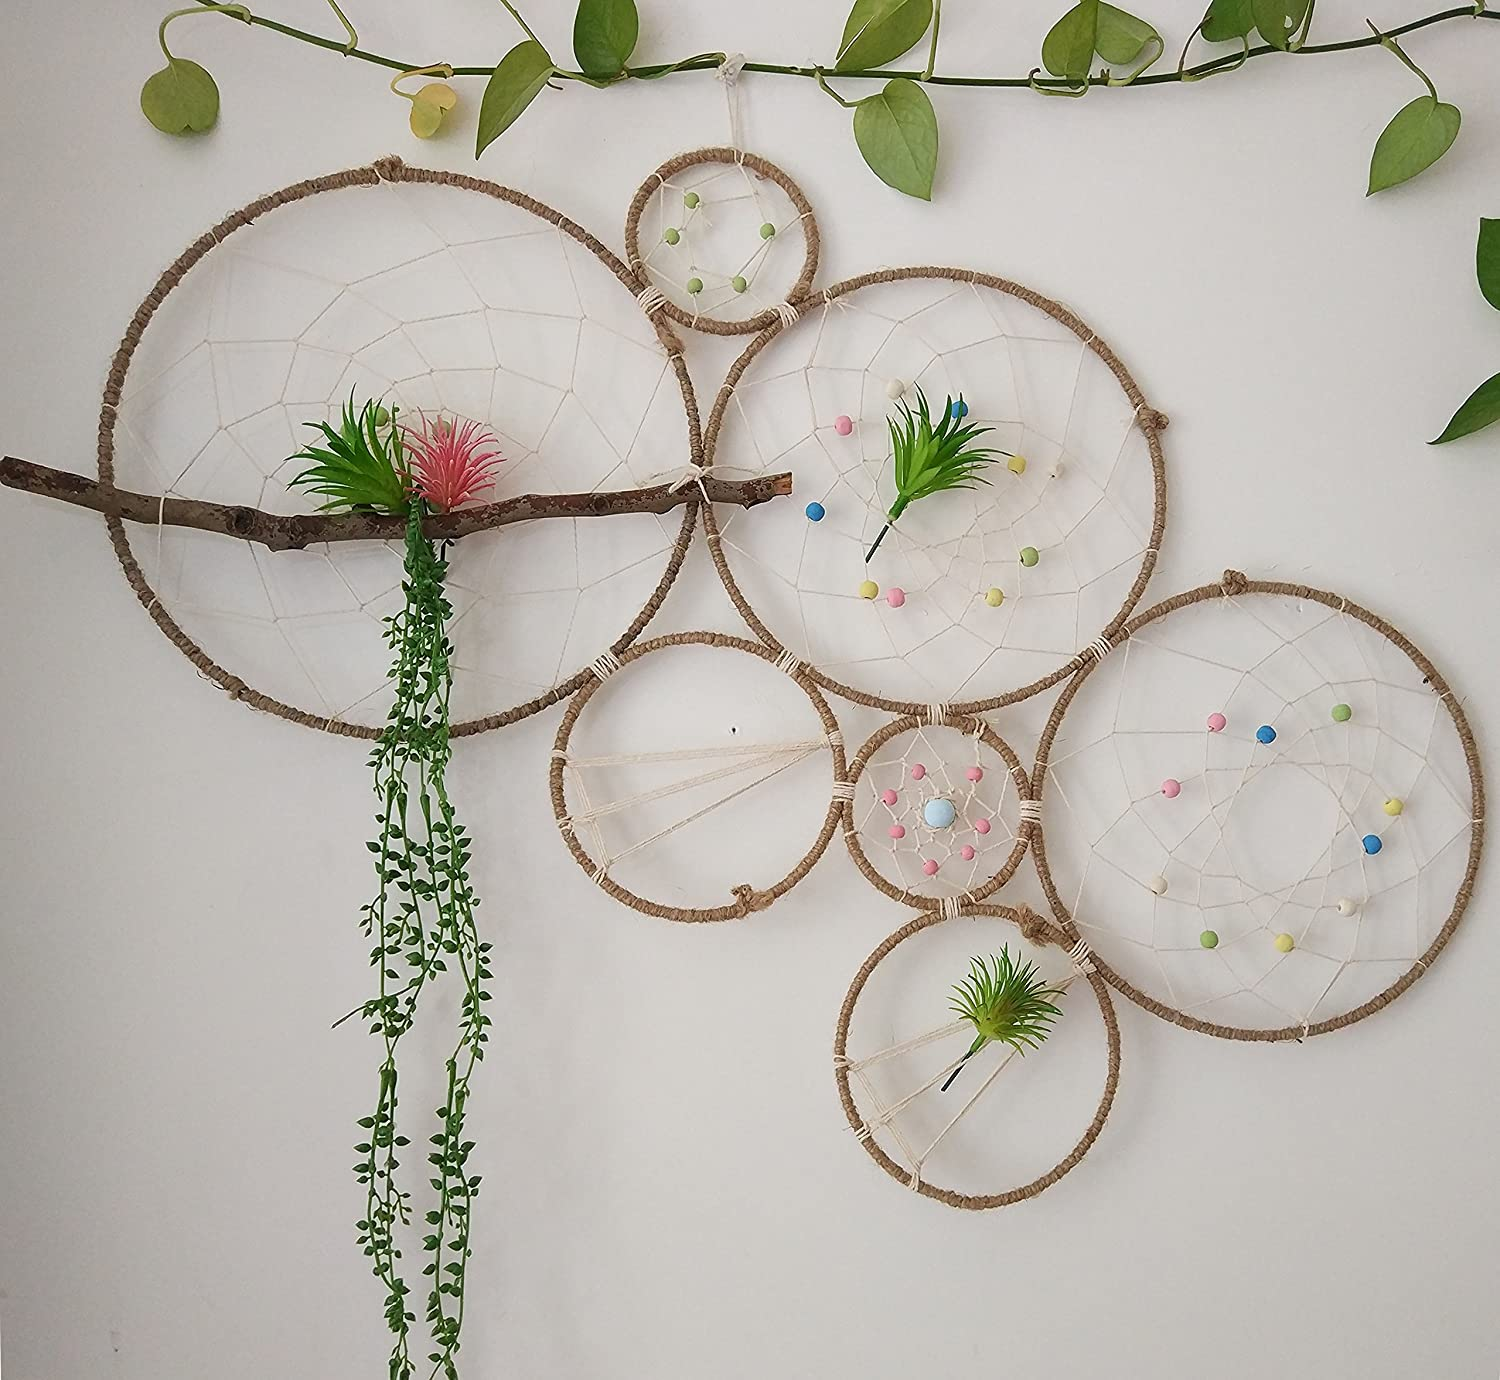 with Faux Artificial Succulent Cactus Plants /並/行/輸/入/品 Dreamcatcher Set-Wall Display Accent-Rustic Wedding Backdrop RISEON DIY Large Boho Tillandsia Dream Catcher Natural Air Plant Wall Hanger Holder Stand